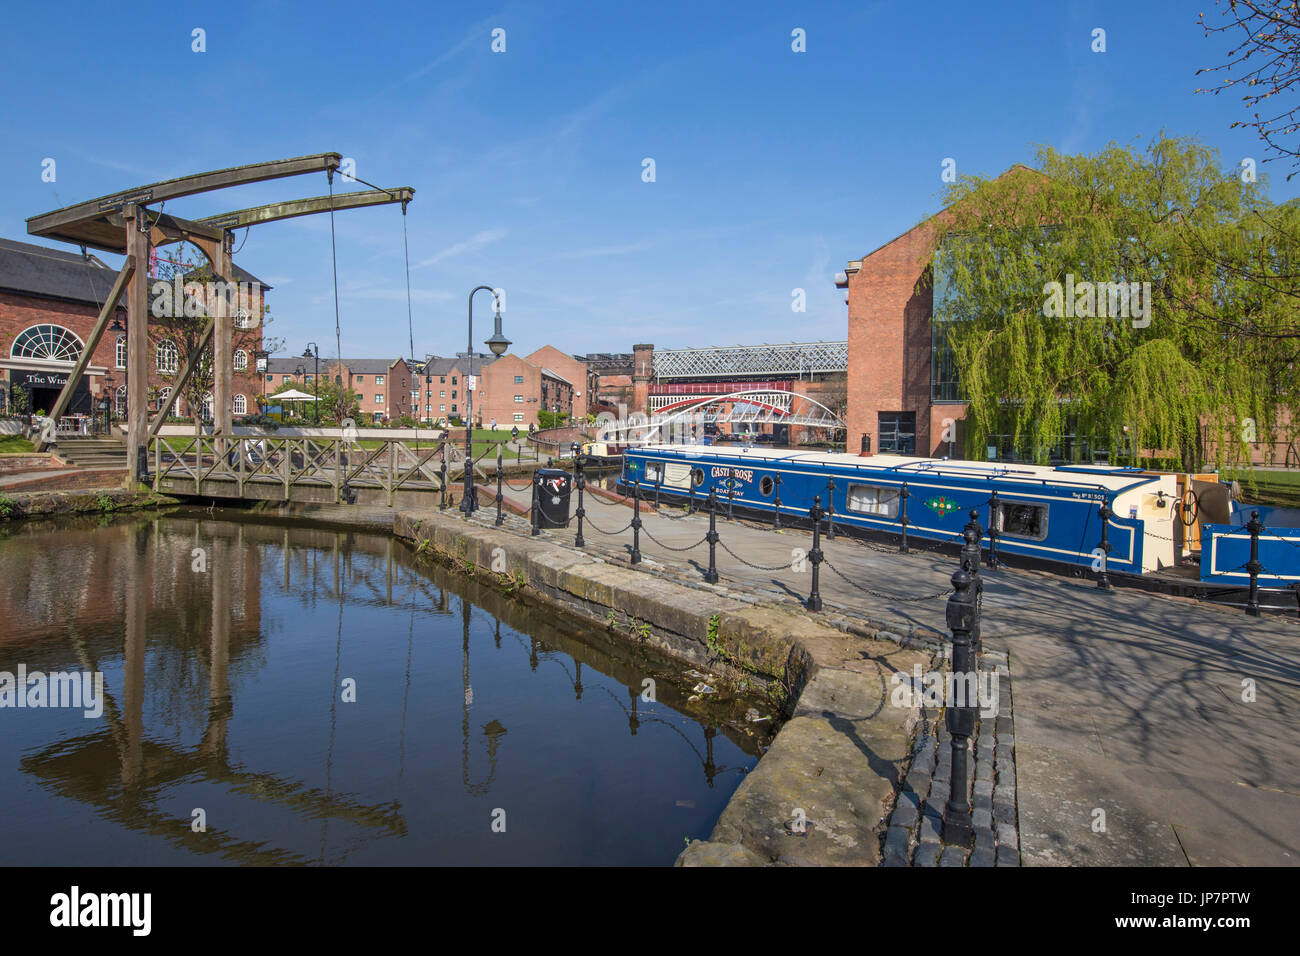 The Castlefield Basin and Canals in central Manchester. Stock Photo